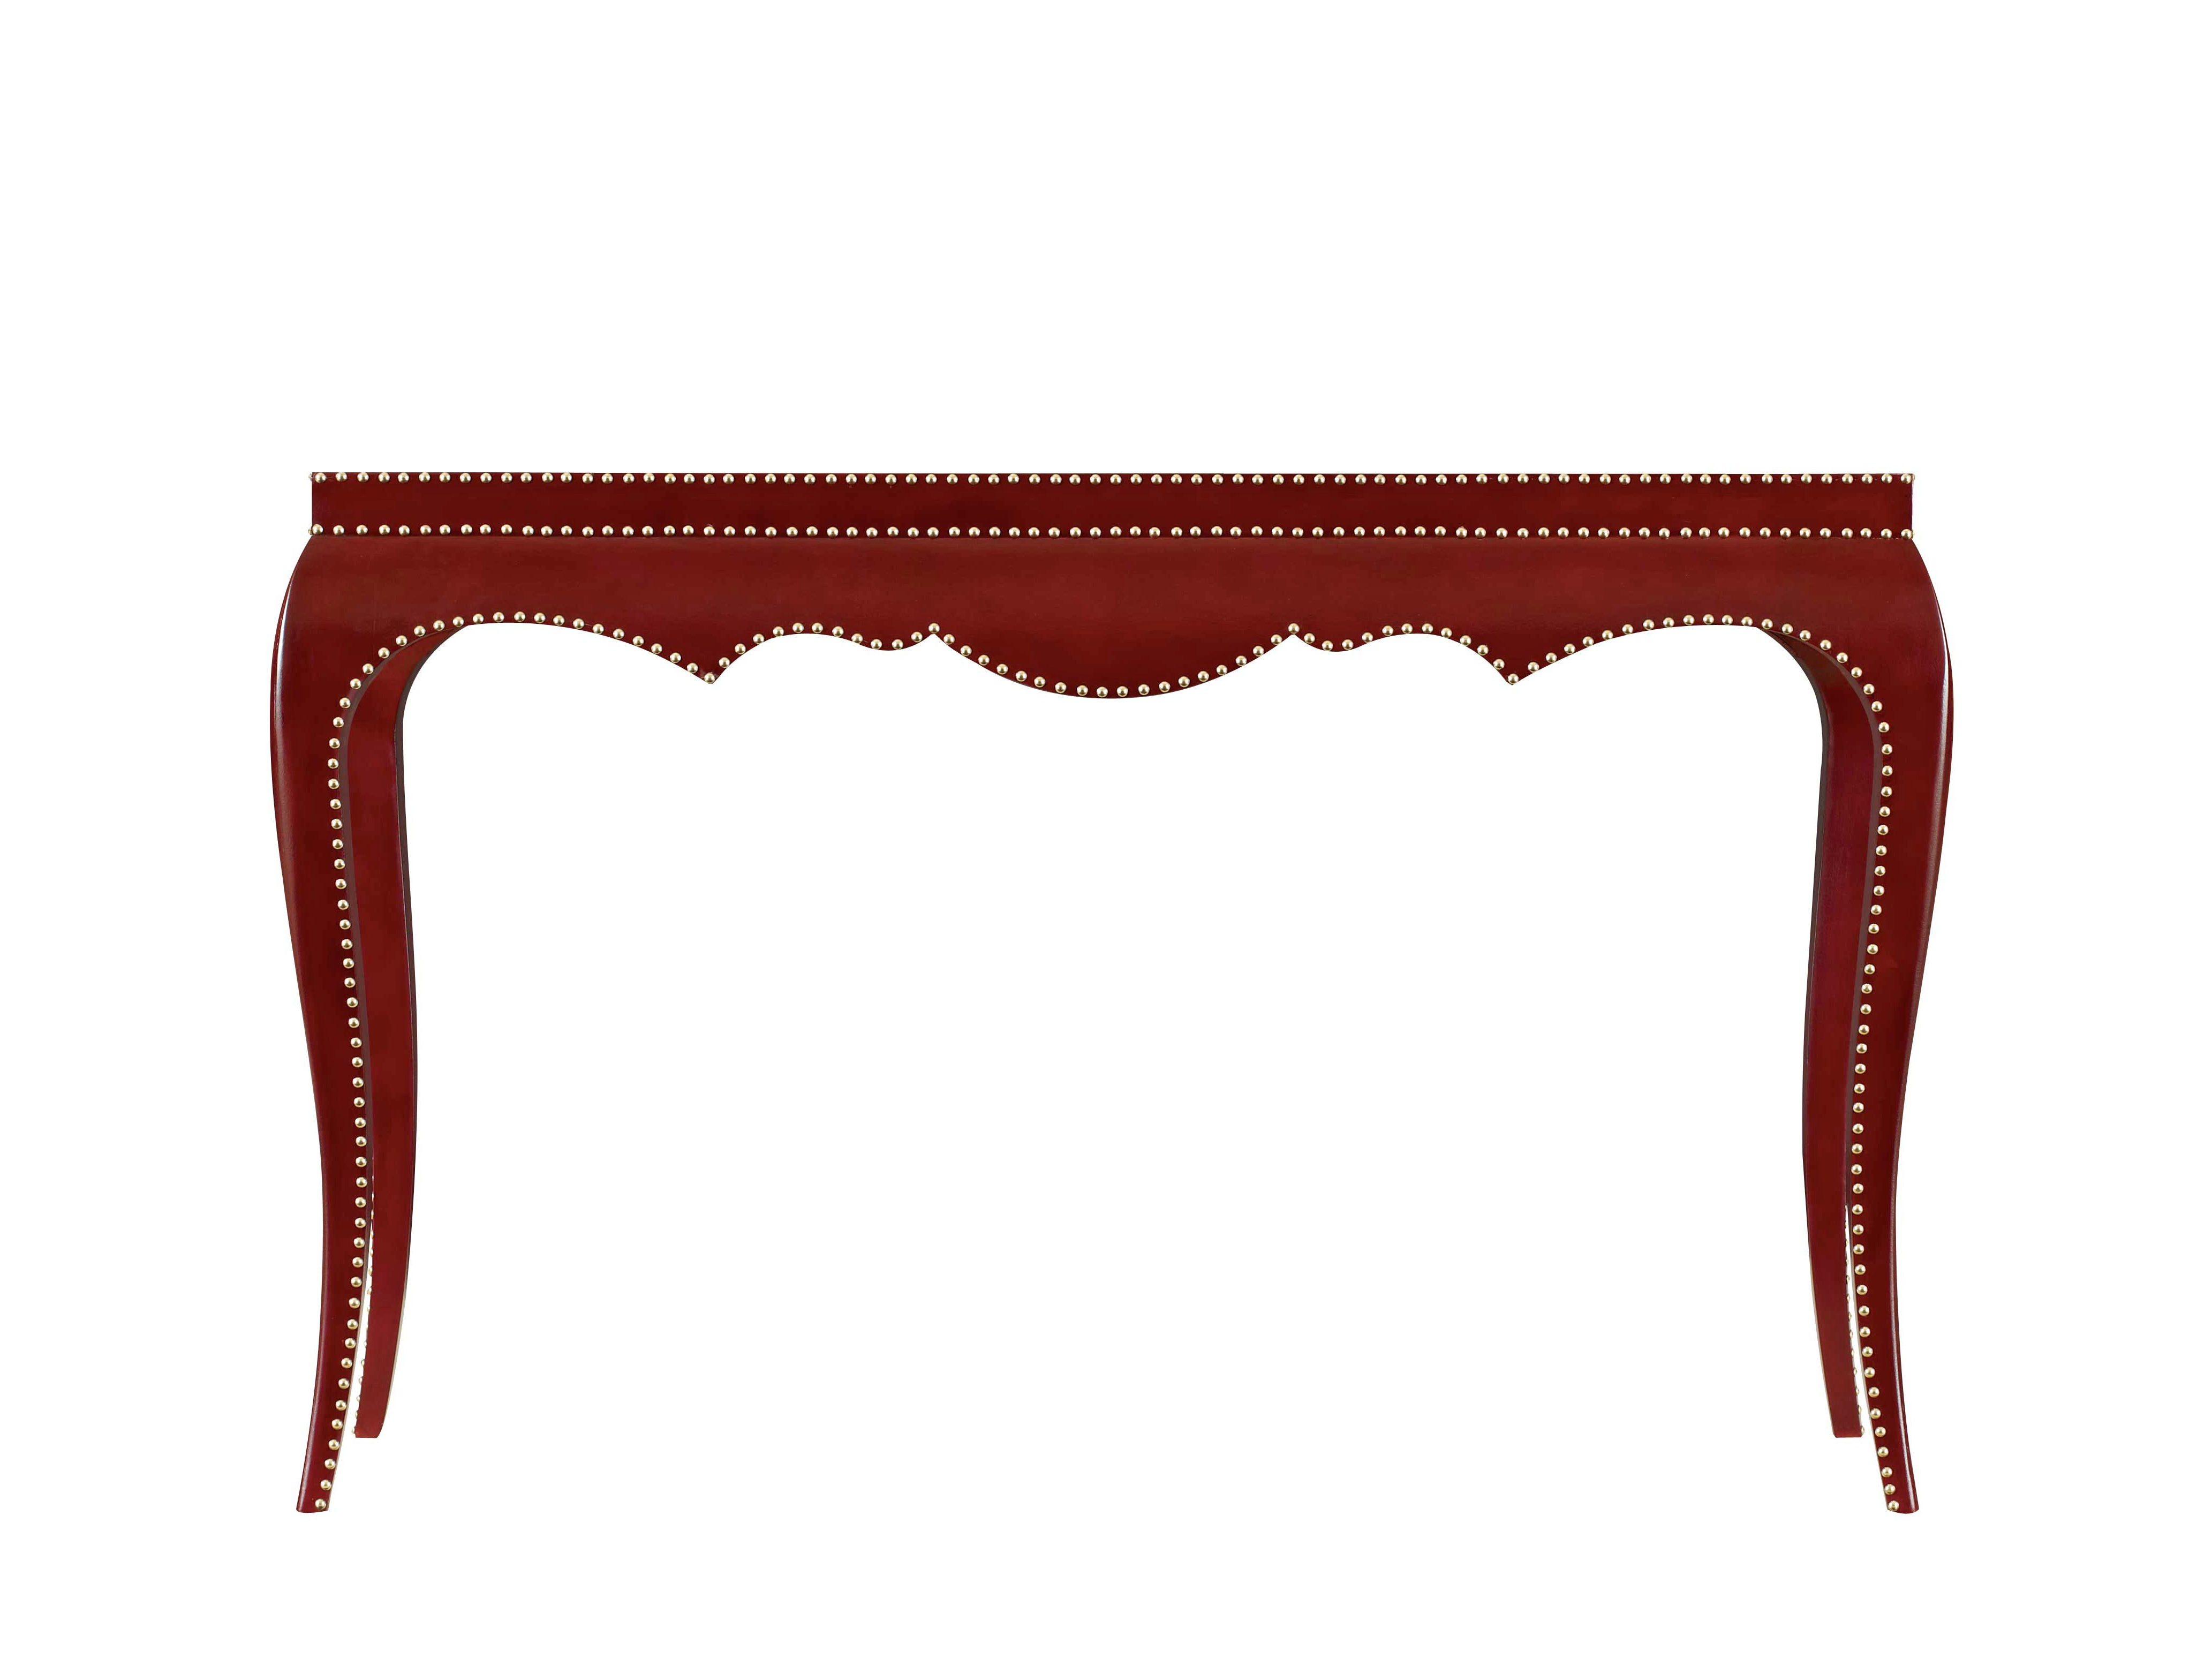 Home Decor Ideas – Console Tables – Architectural Digest Inside Intarsia Console Tables (View 7 of 20)